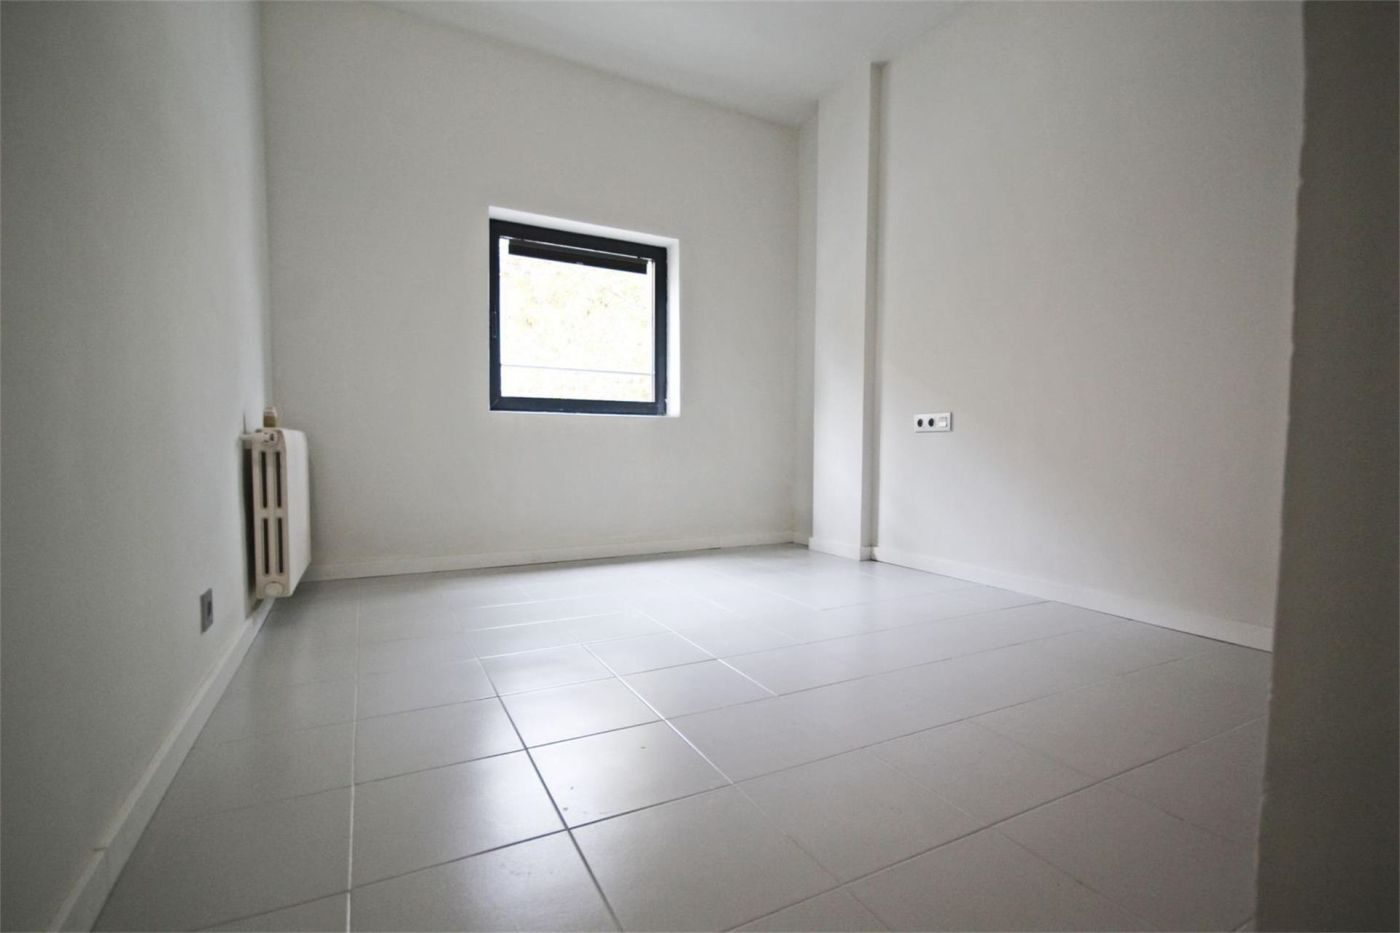 Location Appartement à Carrer de ramon turró, 39. La vila olímpica del poblenou / carrer de ramon tu